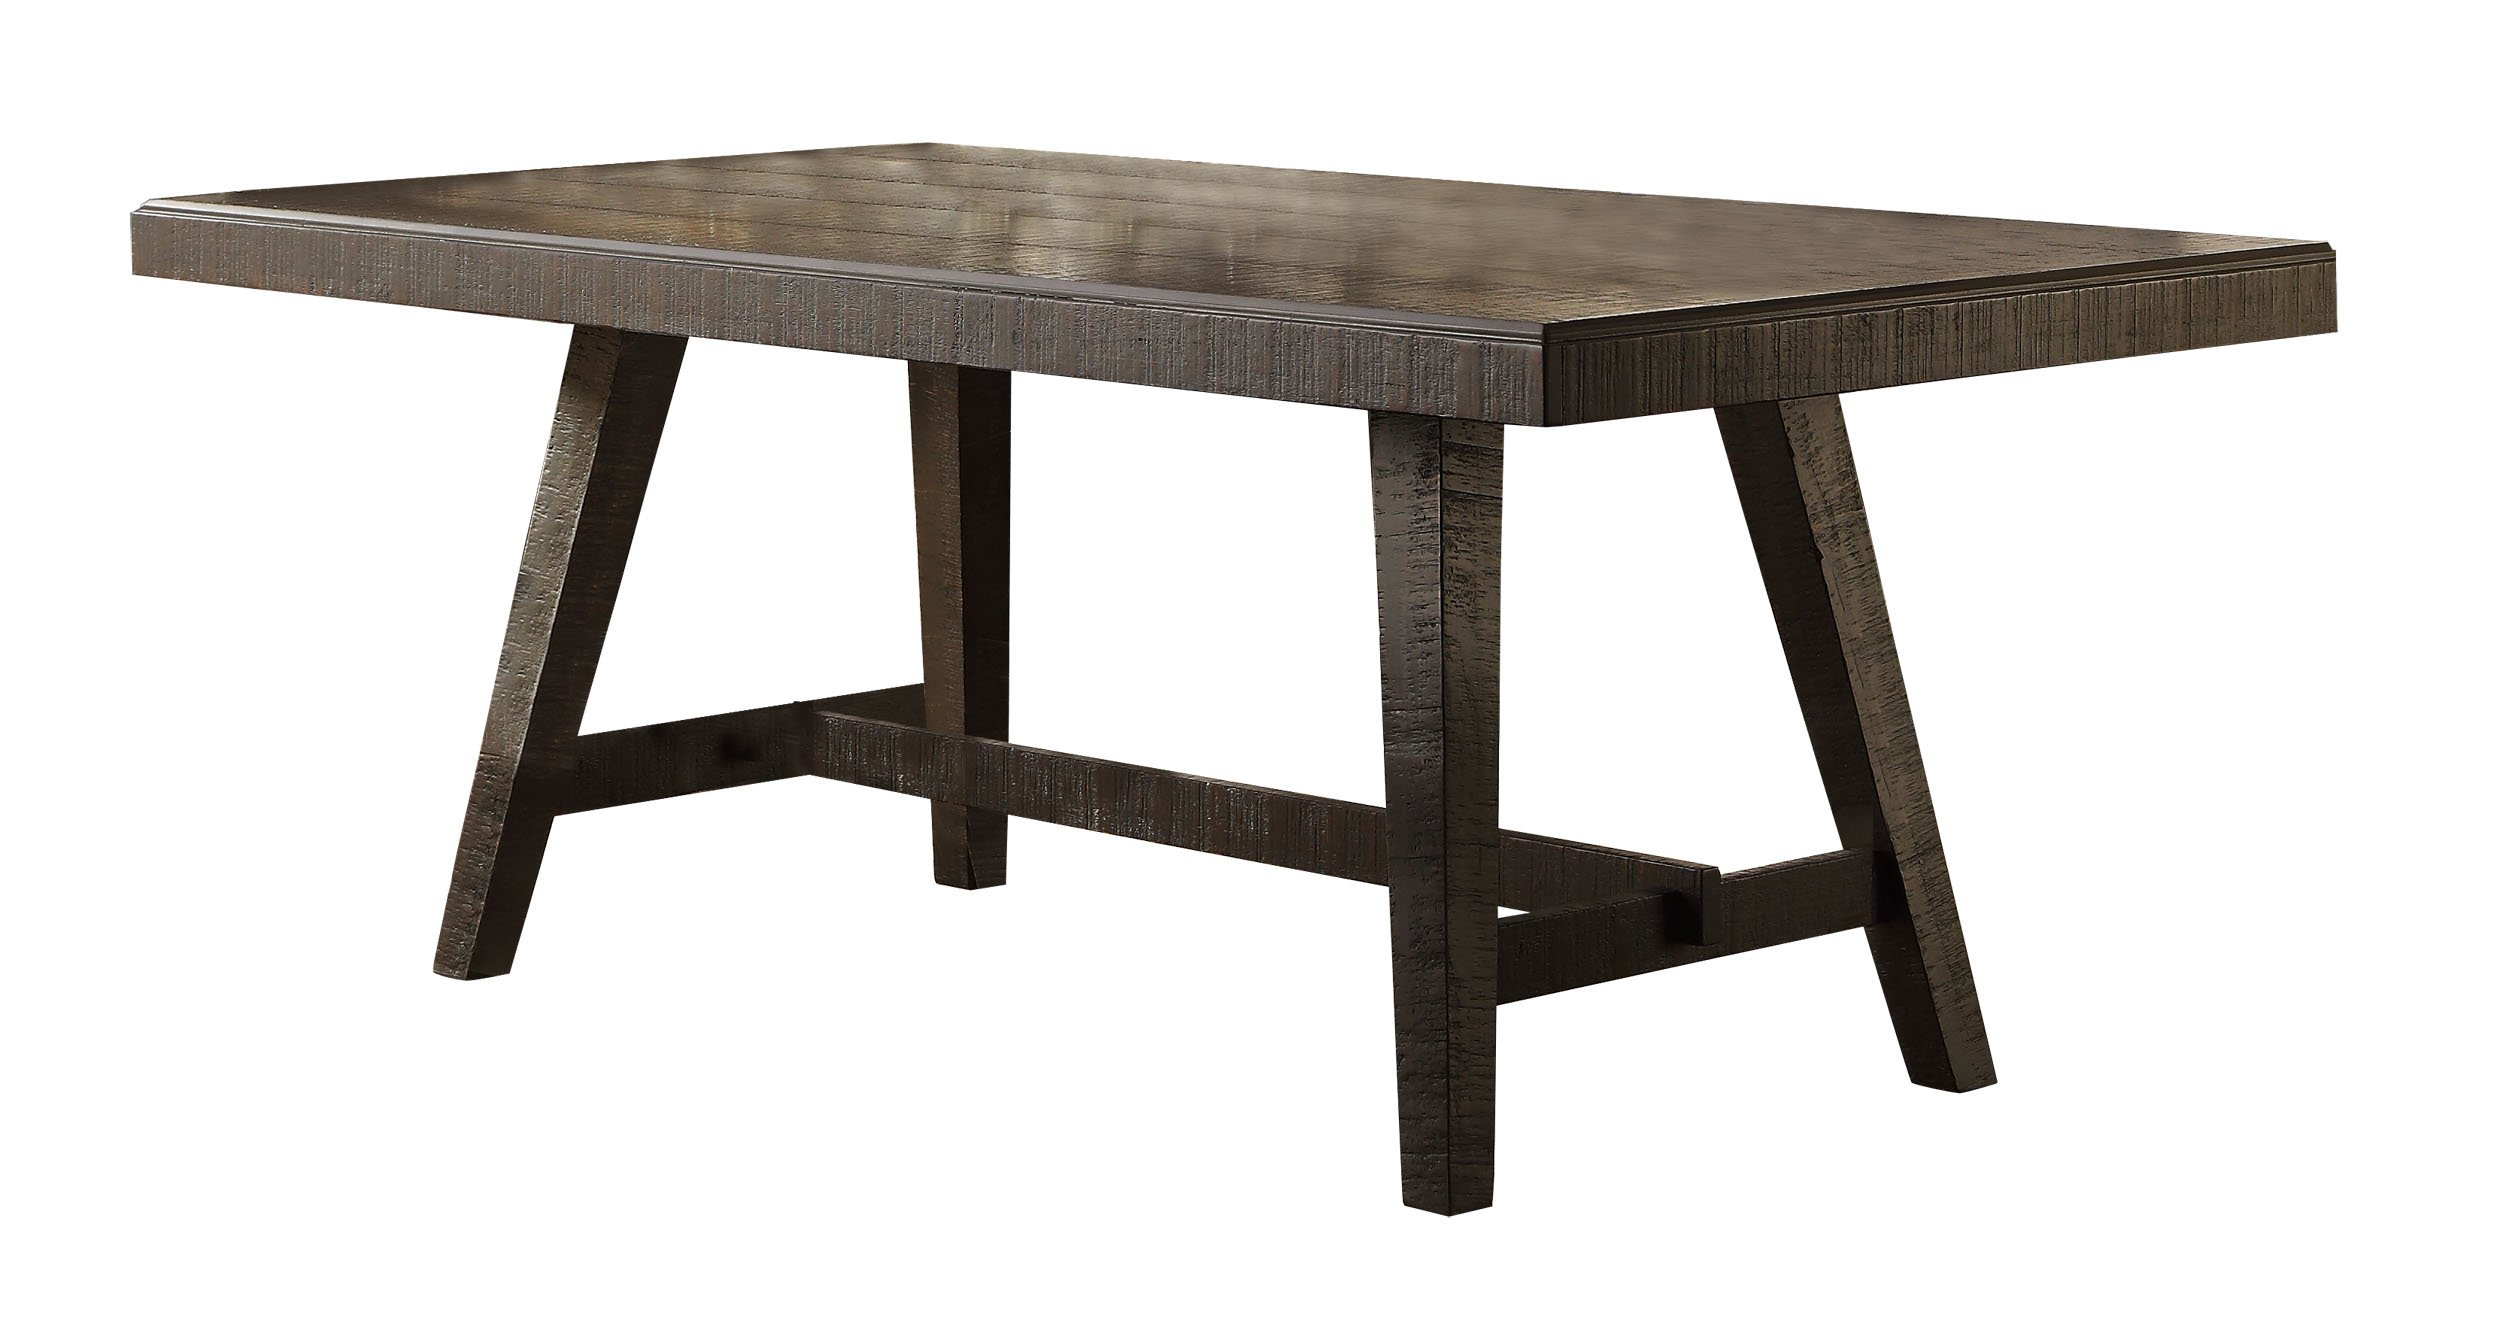 Homelegance Fenwick 76'' Dining Table Hand Scraped Wood Grain Rustic Accent, Gray